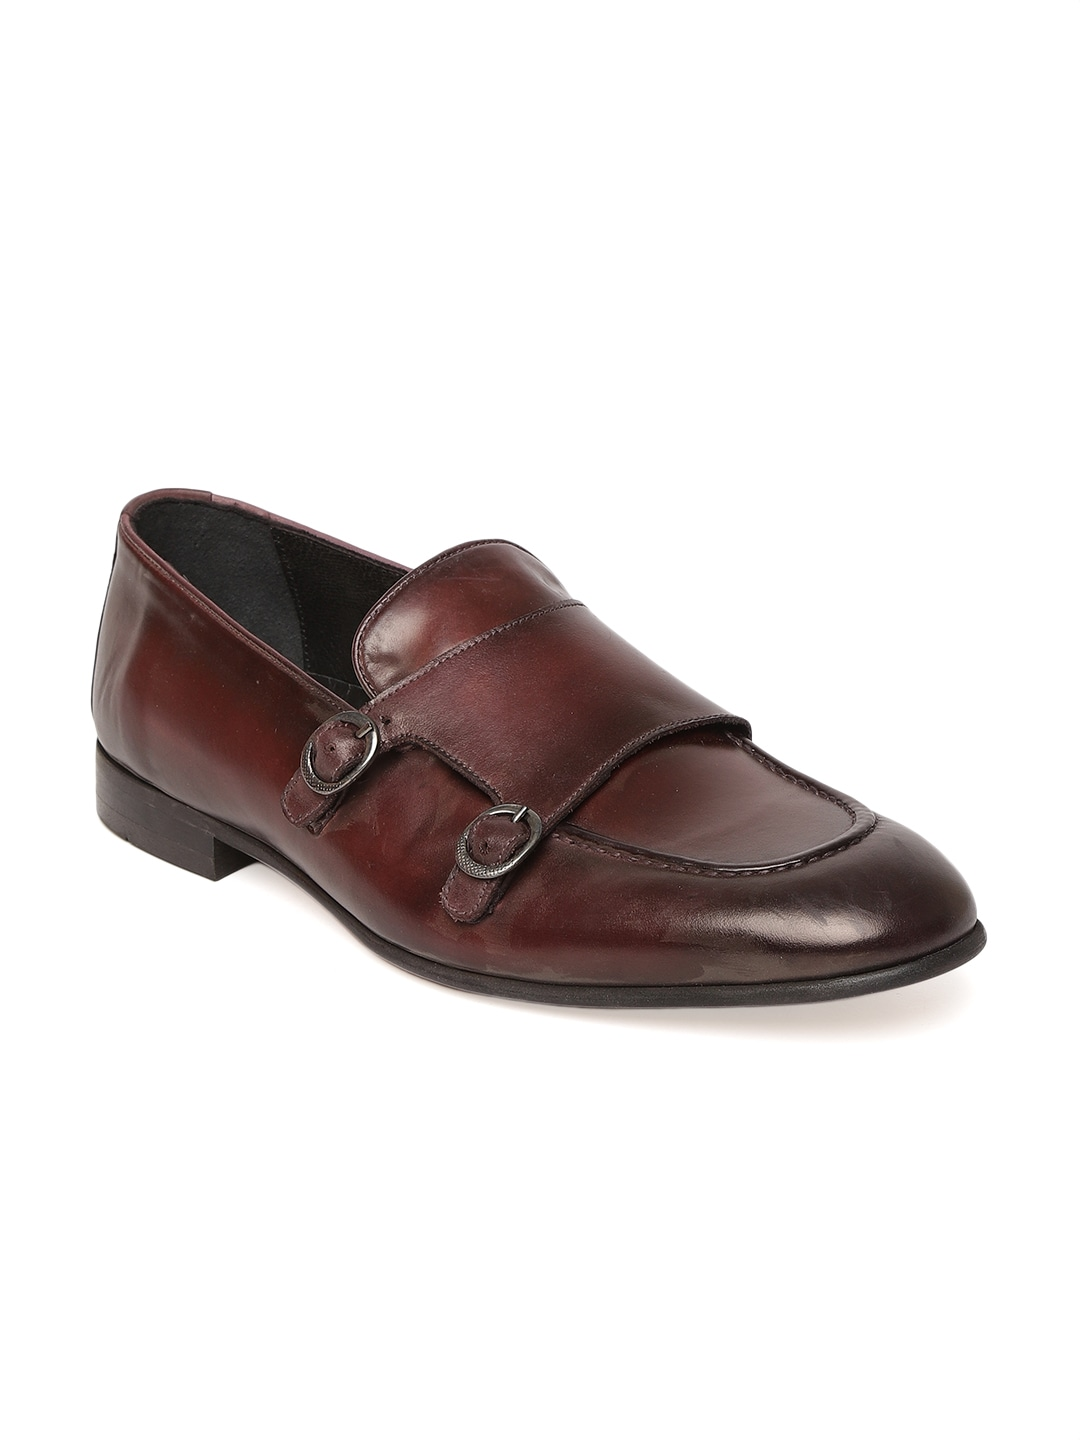 Burgundy Solid Leather Monks